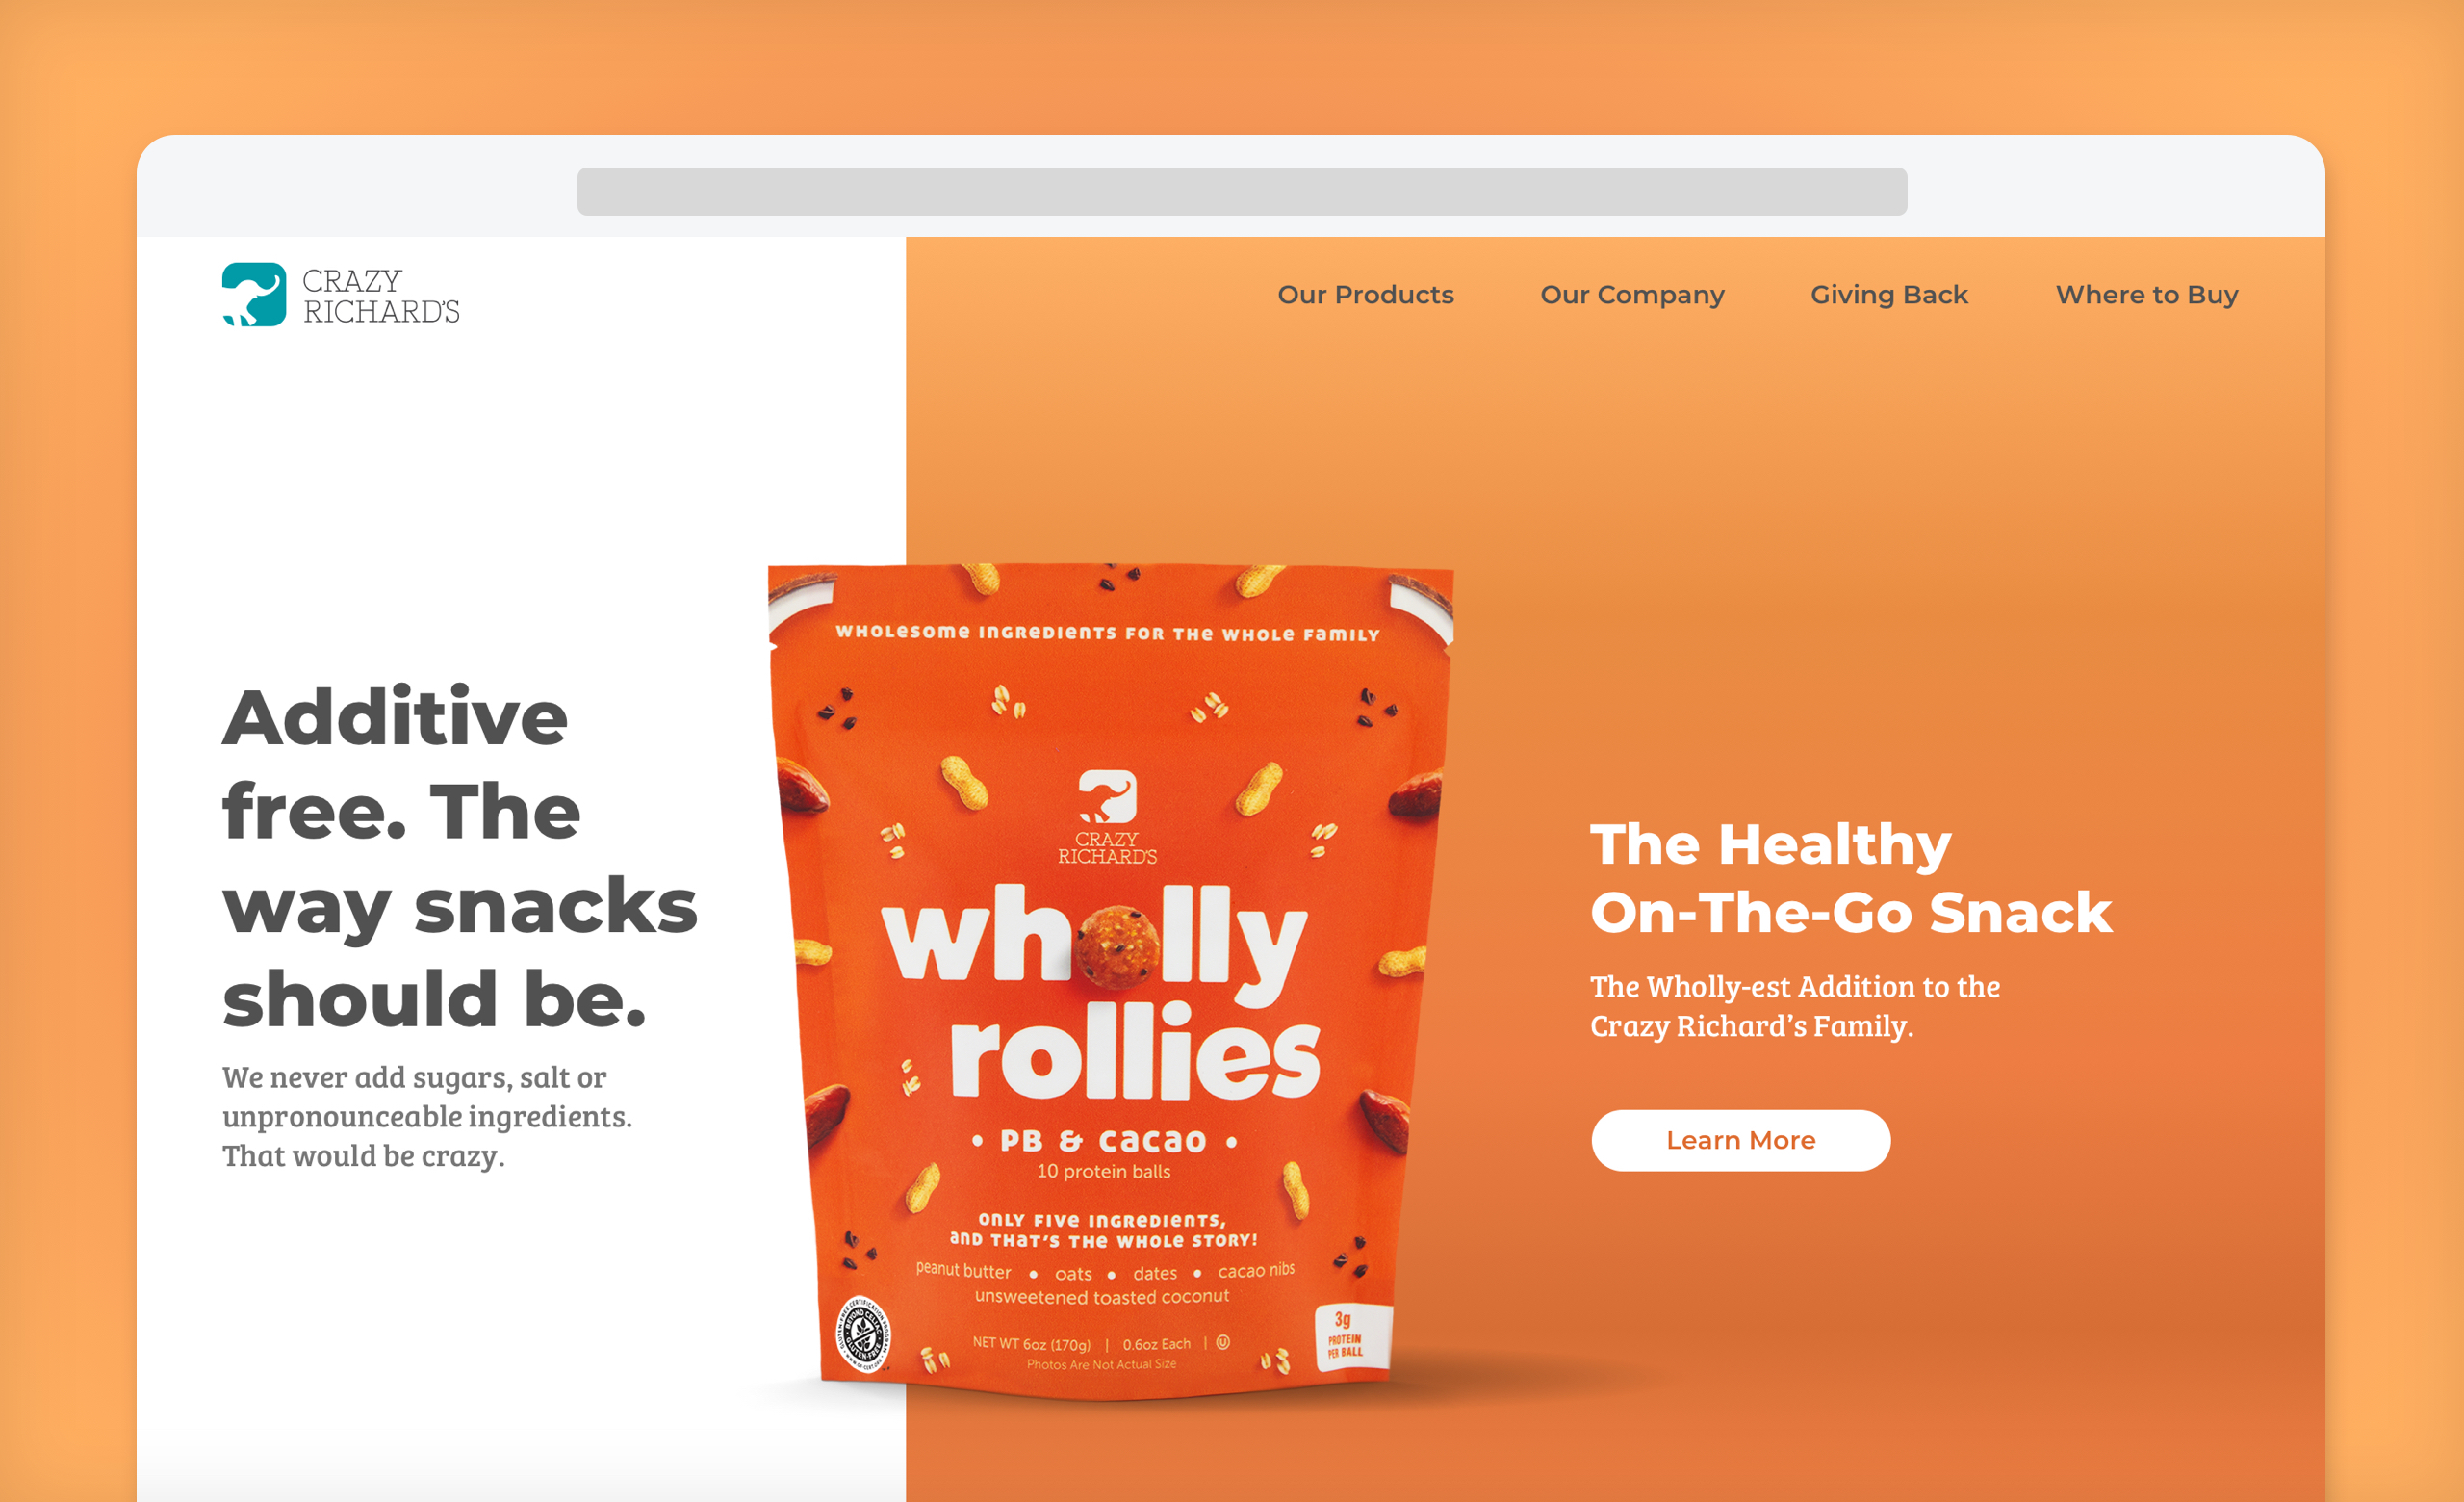 Crazy Richard's homepage mockup with Wholly Rollies